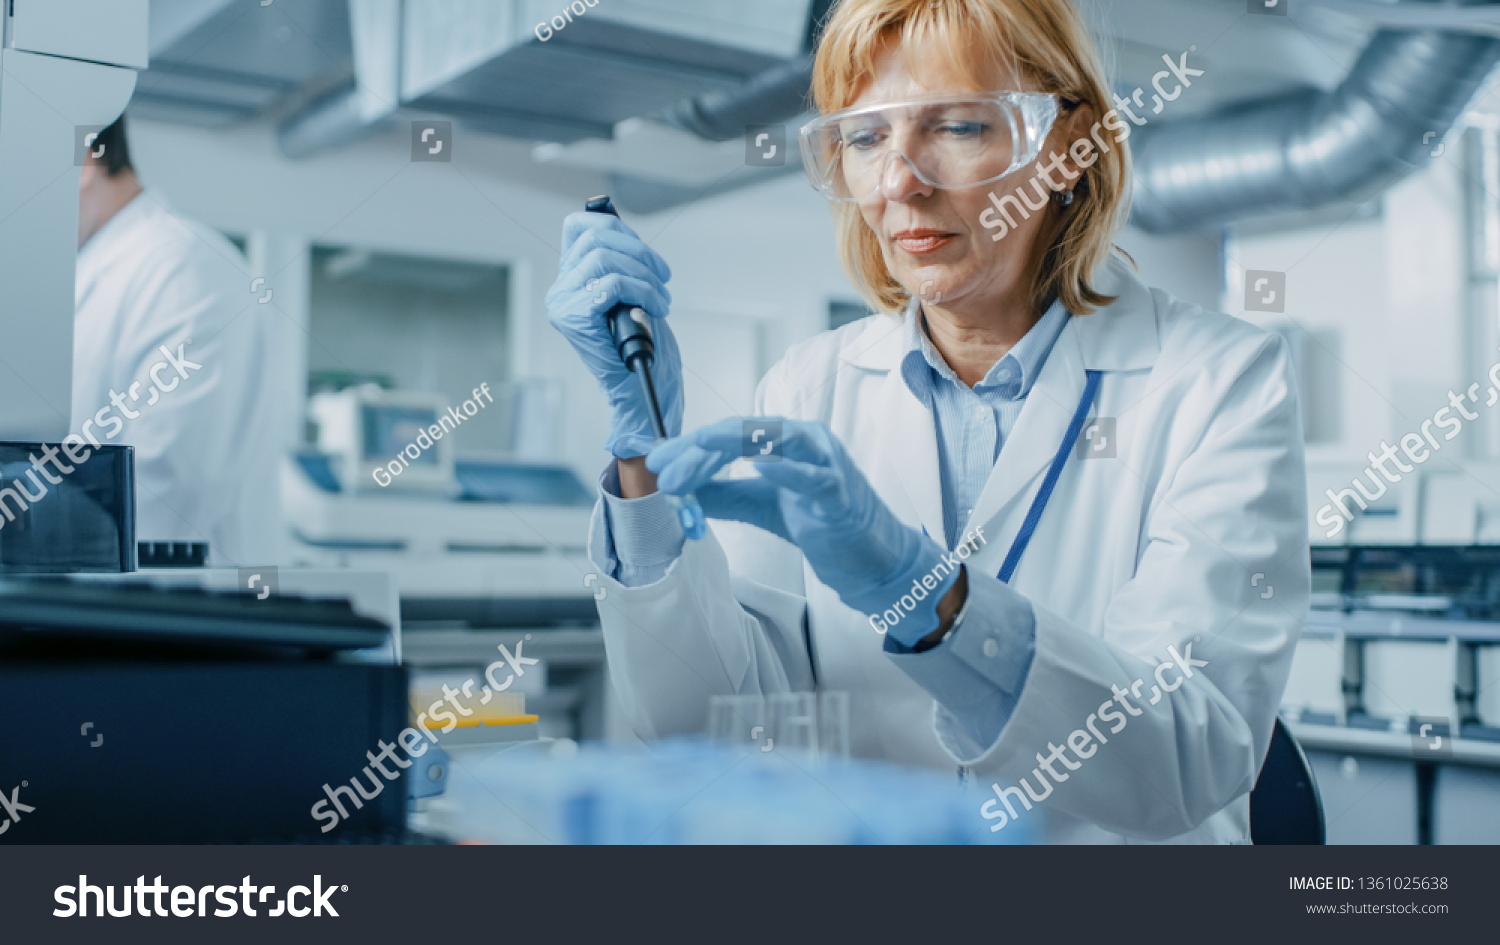 Female Research Scientist Uses Micro Pipette while Working with Test Tubes. People in Innovative Pharmaceutical Laboratory with Modern Medical Equipment for Genetics Research. #1361025638